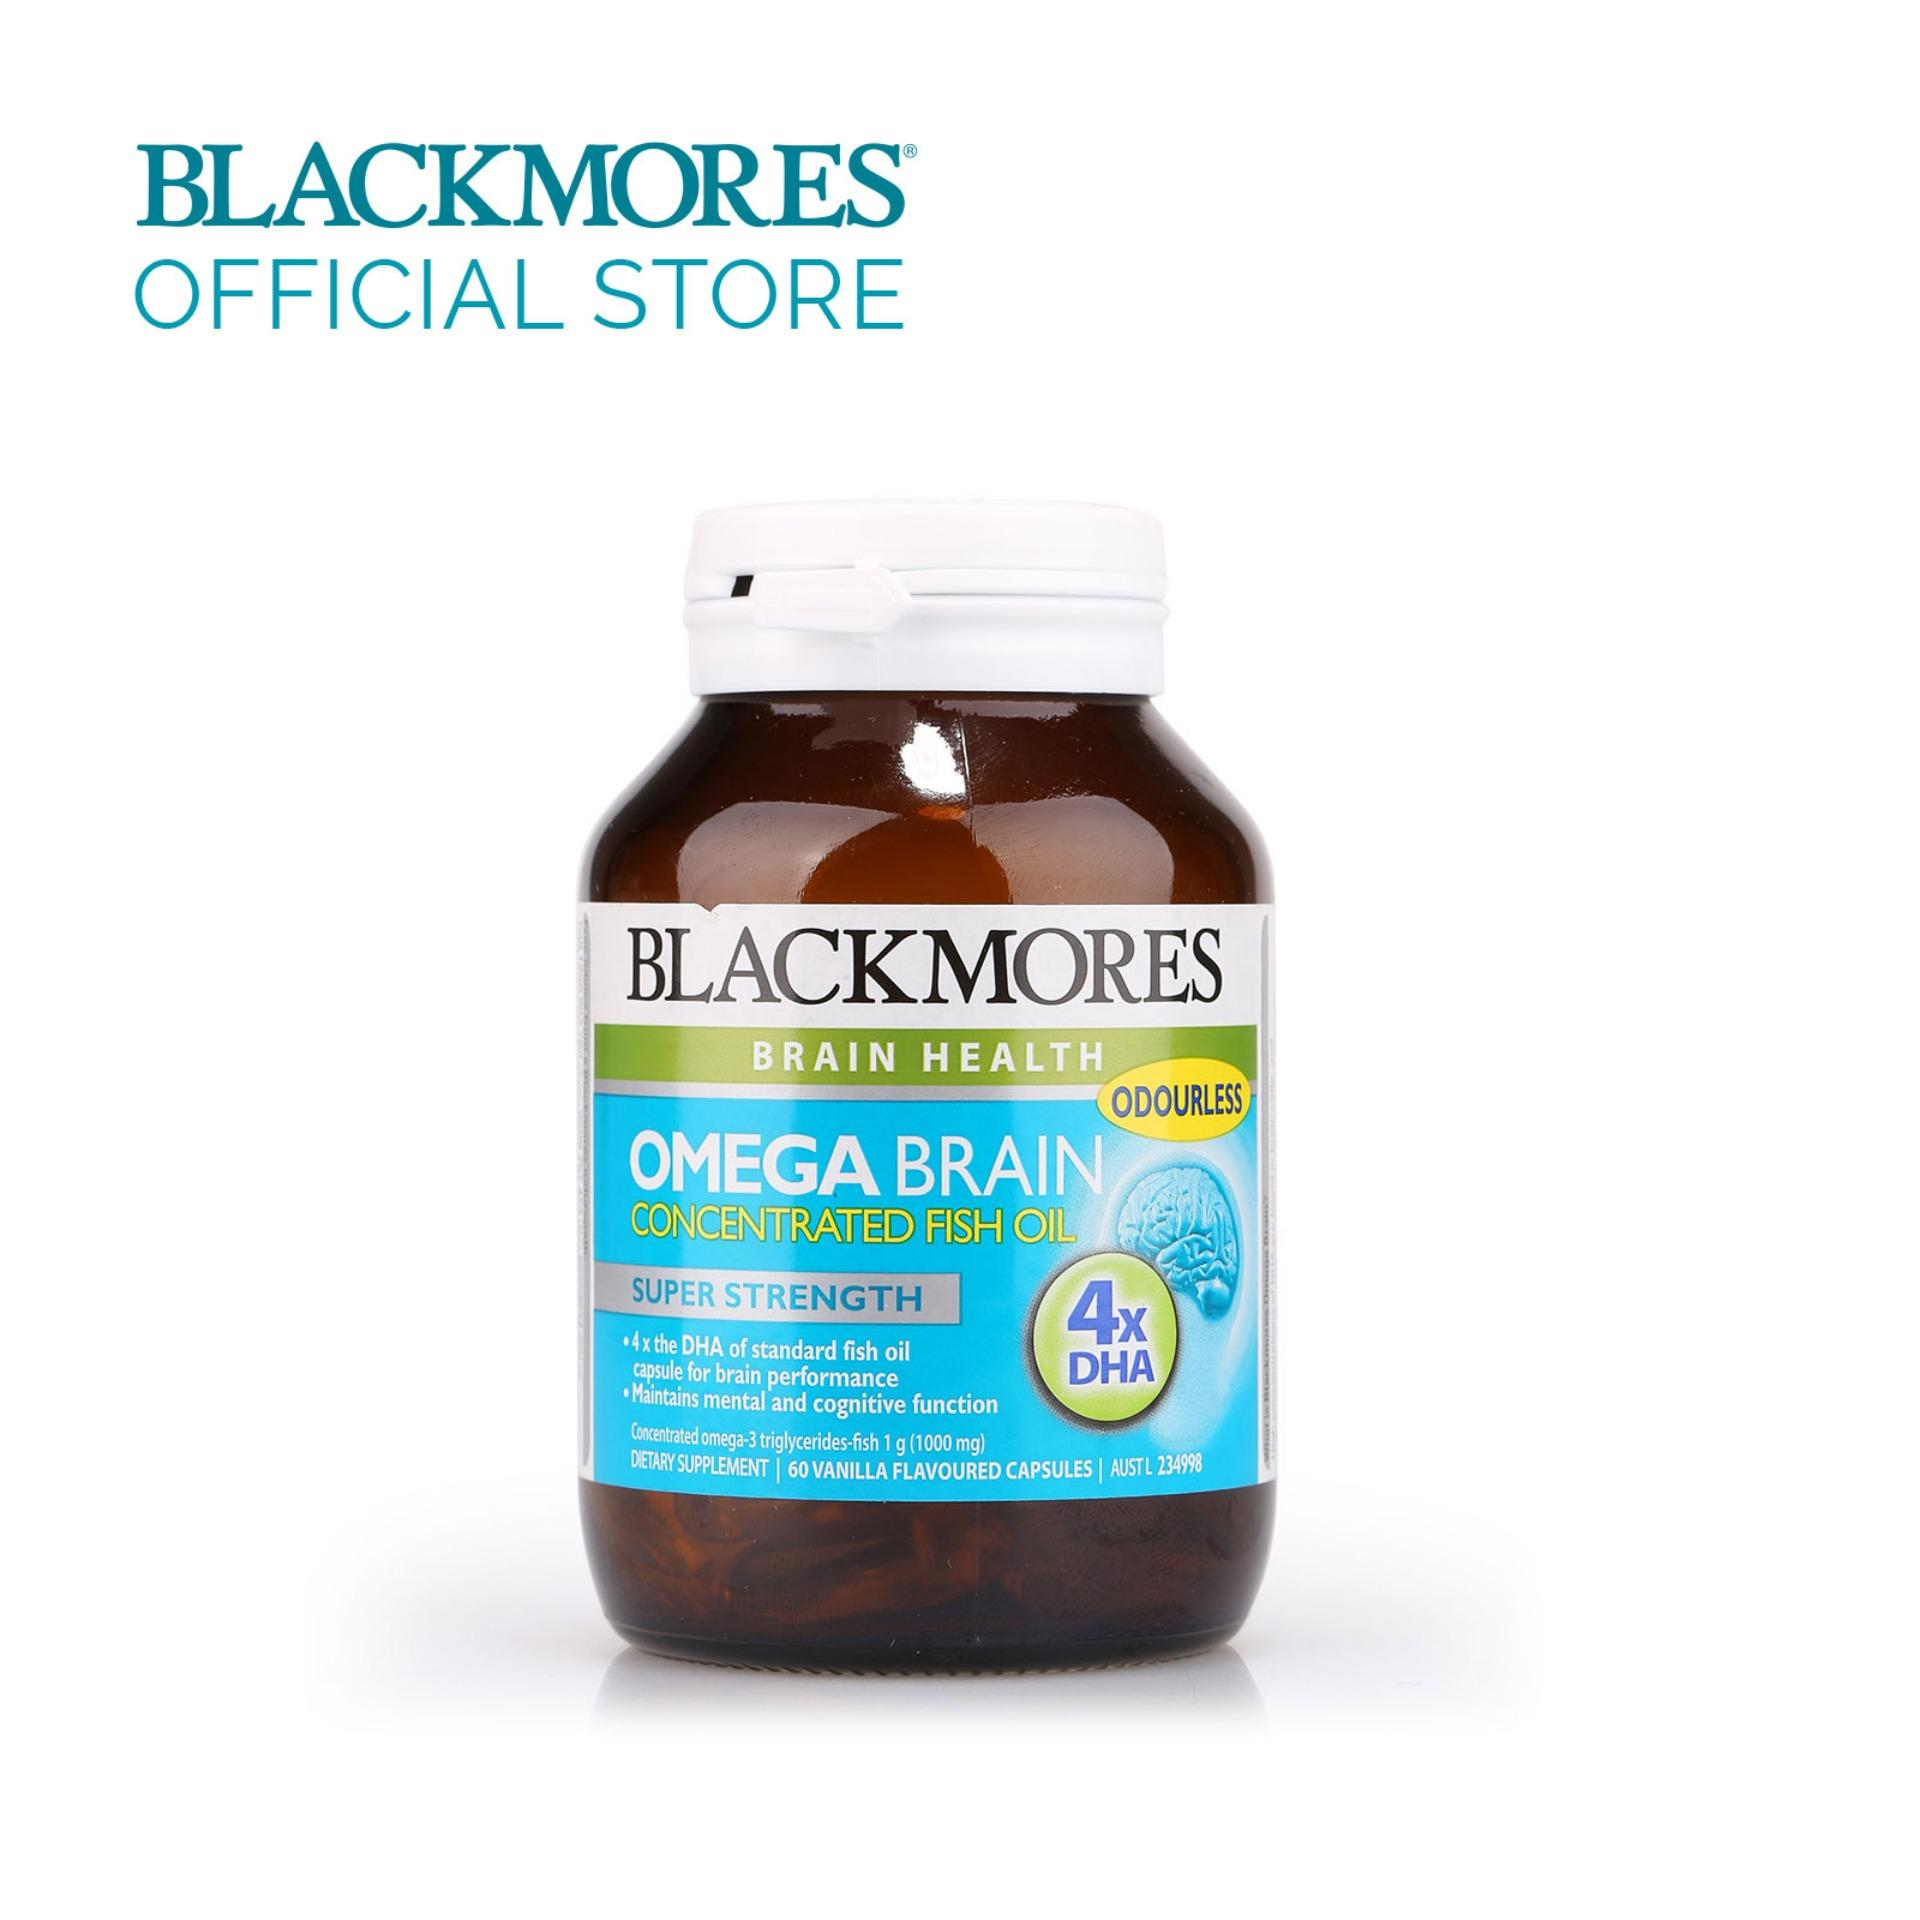 Blackmores Omega Brain 1000mg 60caps By Blackmores Official Store.